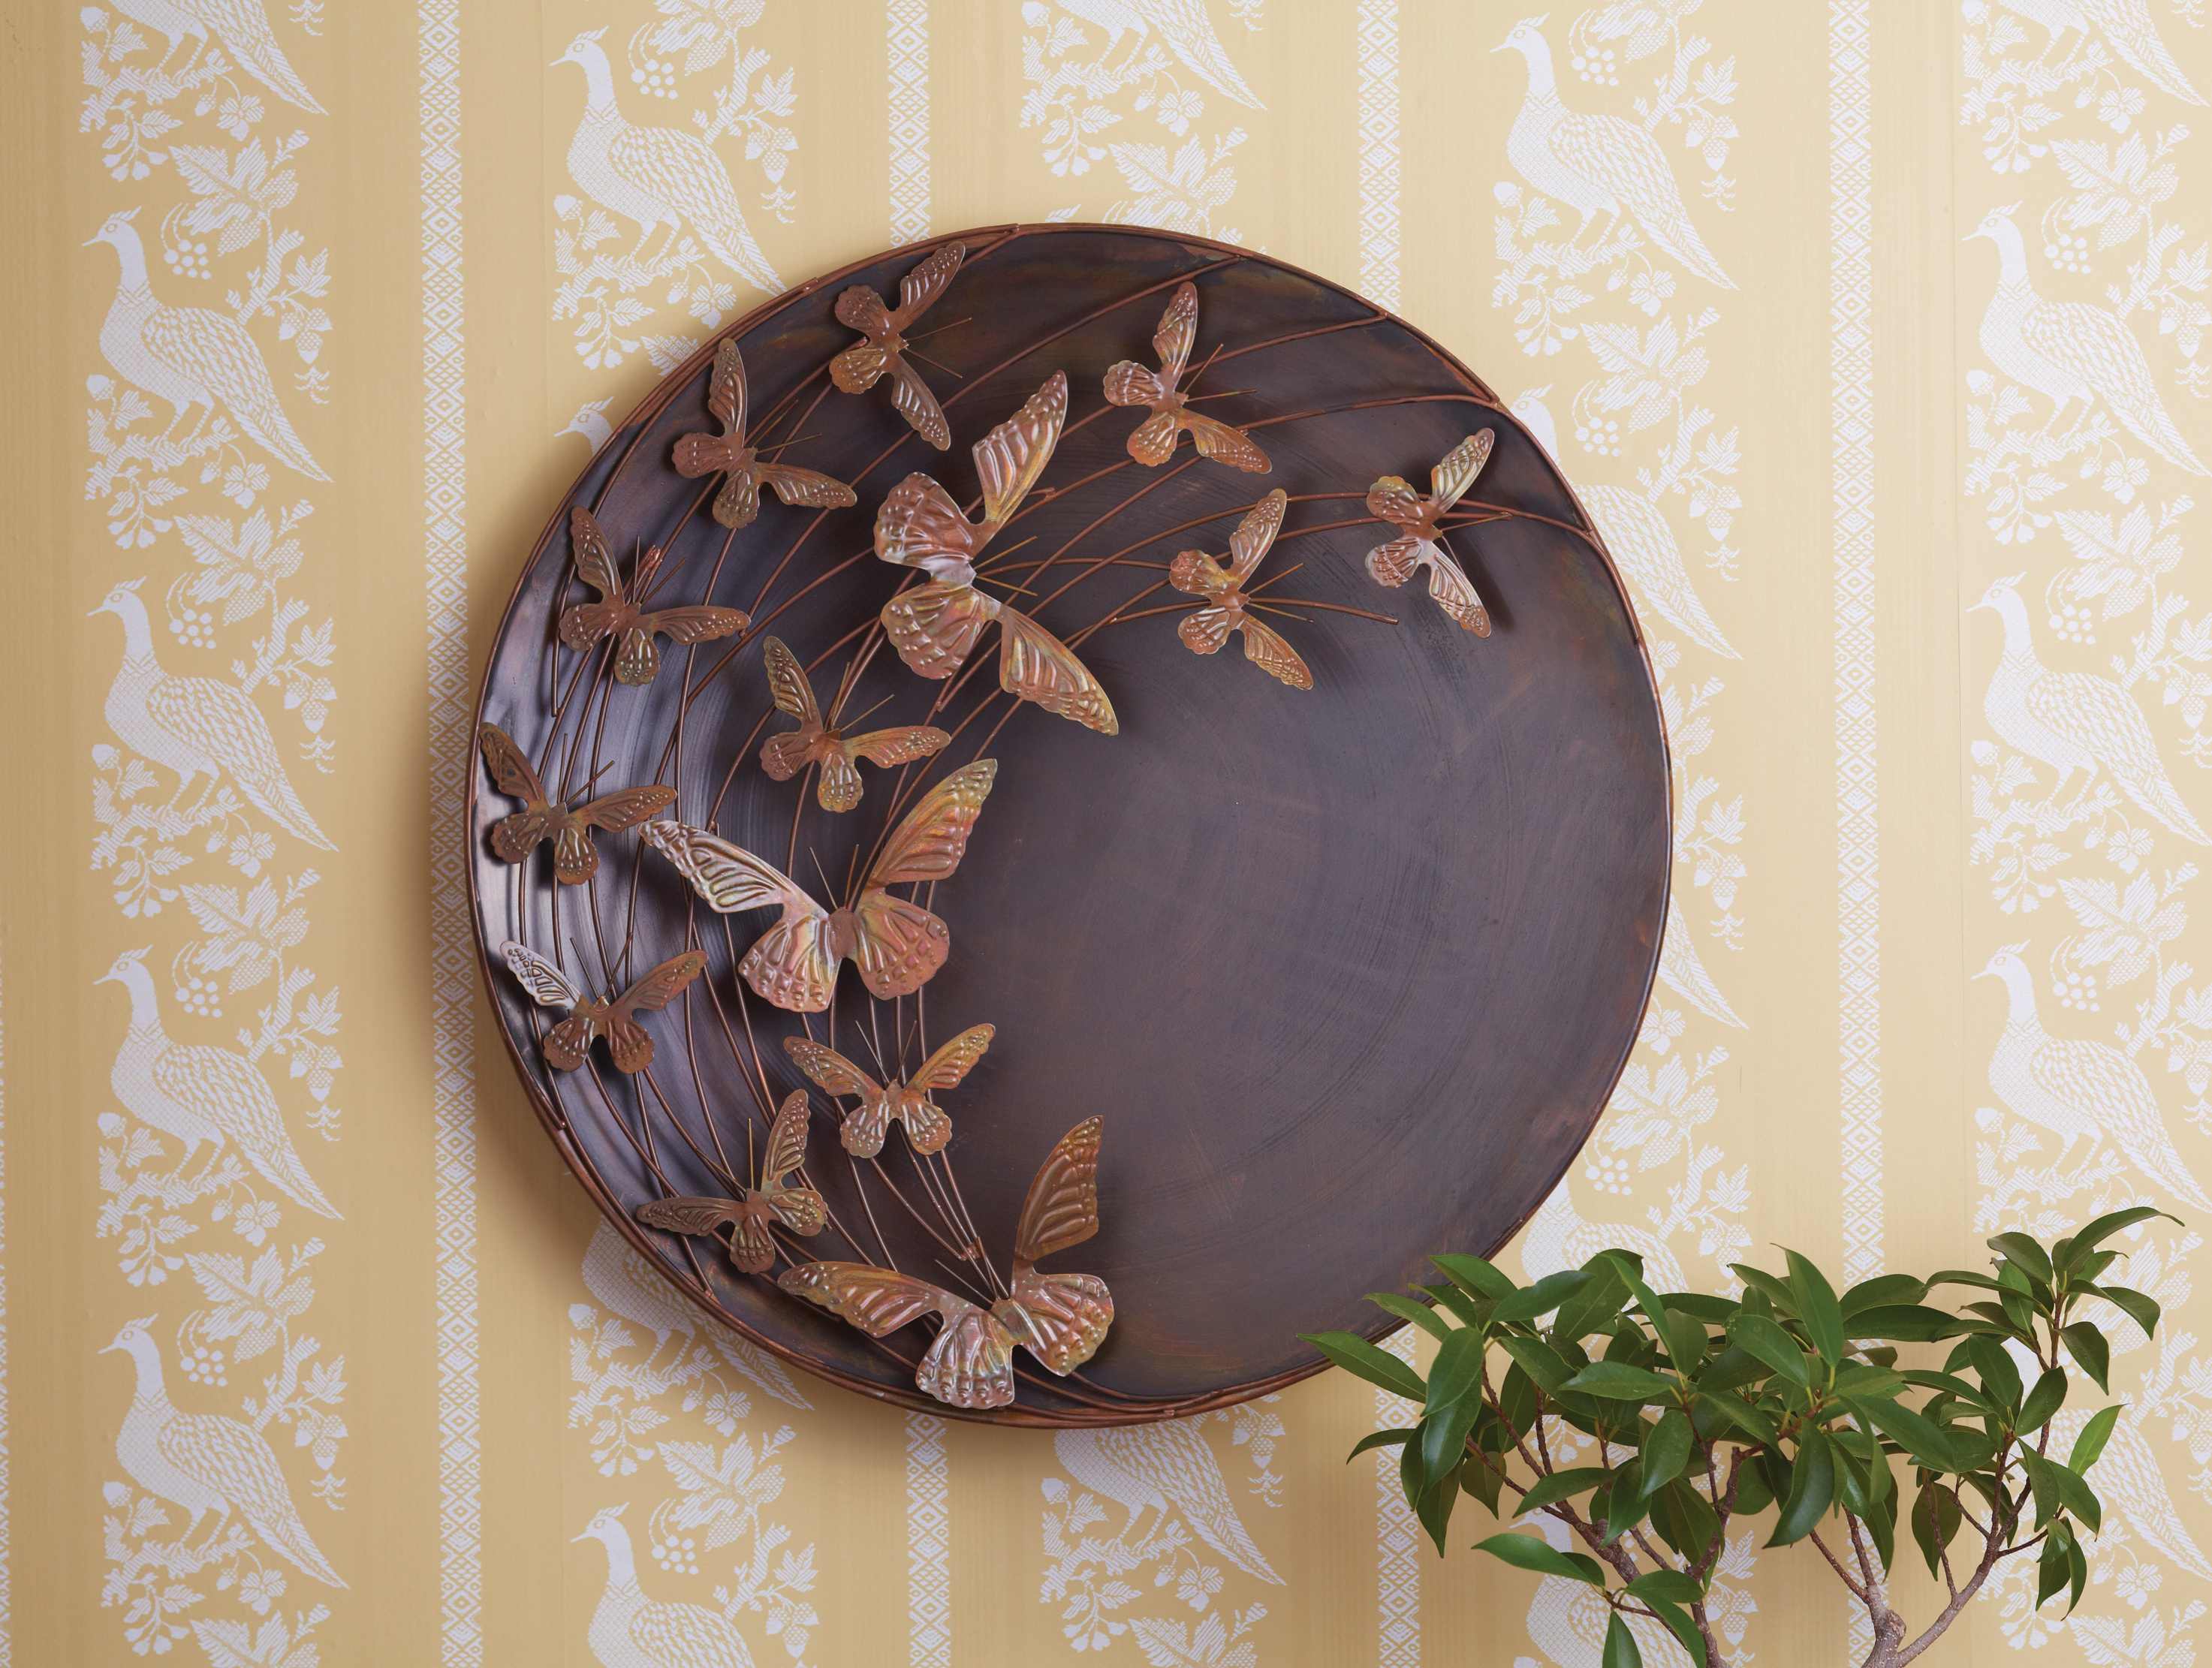 Flower And Butterfly Urban Design Metal Wall Decor Pertaining To Most Up To Date Metal Butterfly Wall Art – Large Outdoor Metal Wall Art – 3D (View 12 of 20)